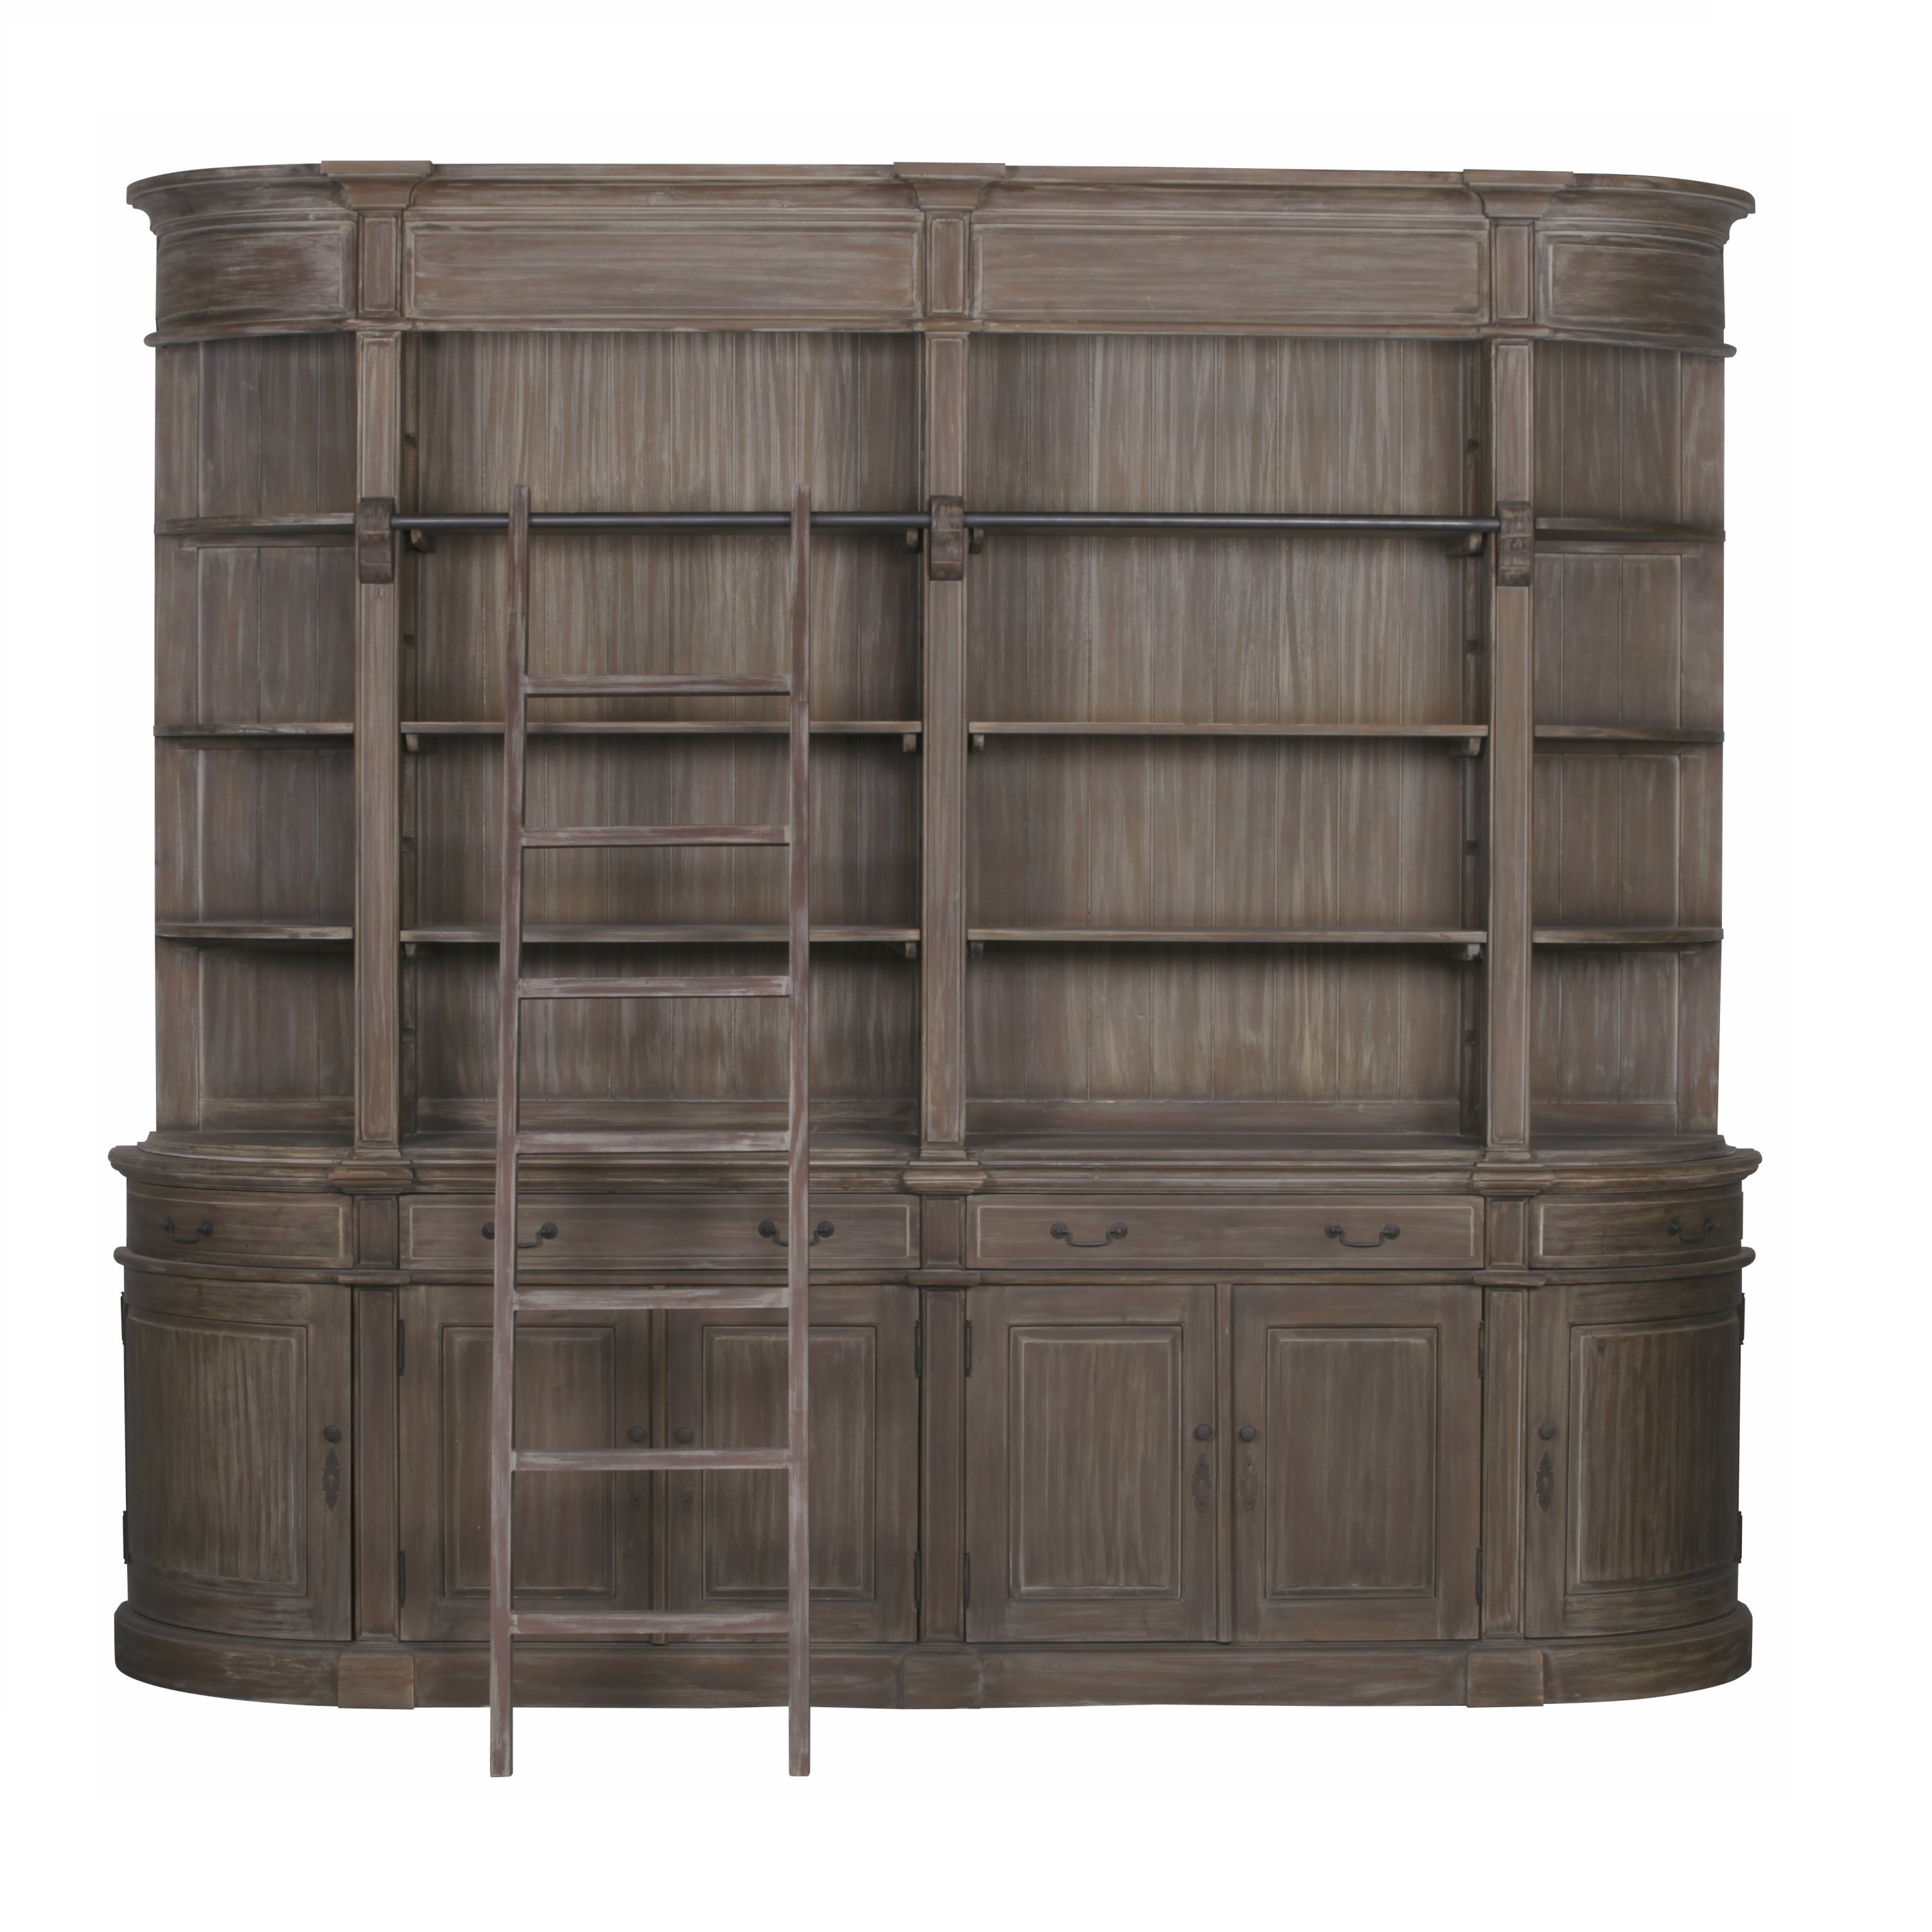 Extra Large Wooden Double Bookcase with Ladder